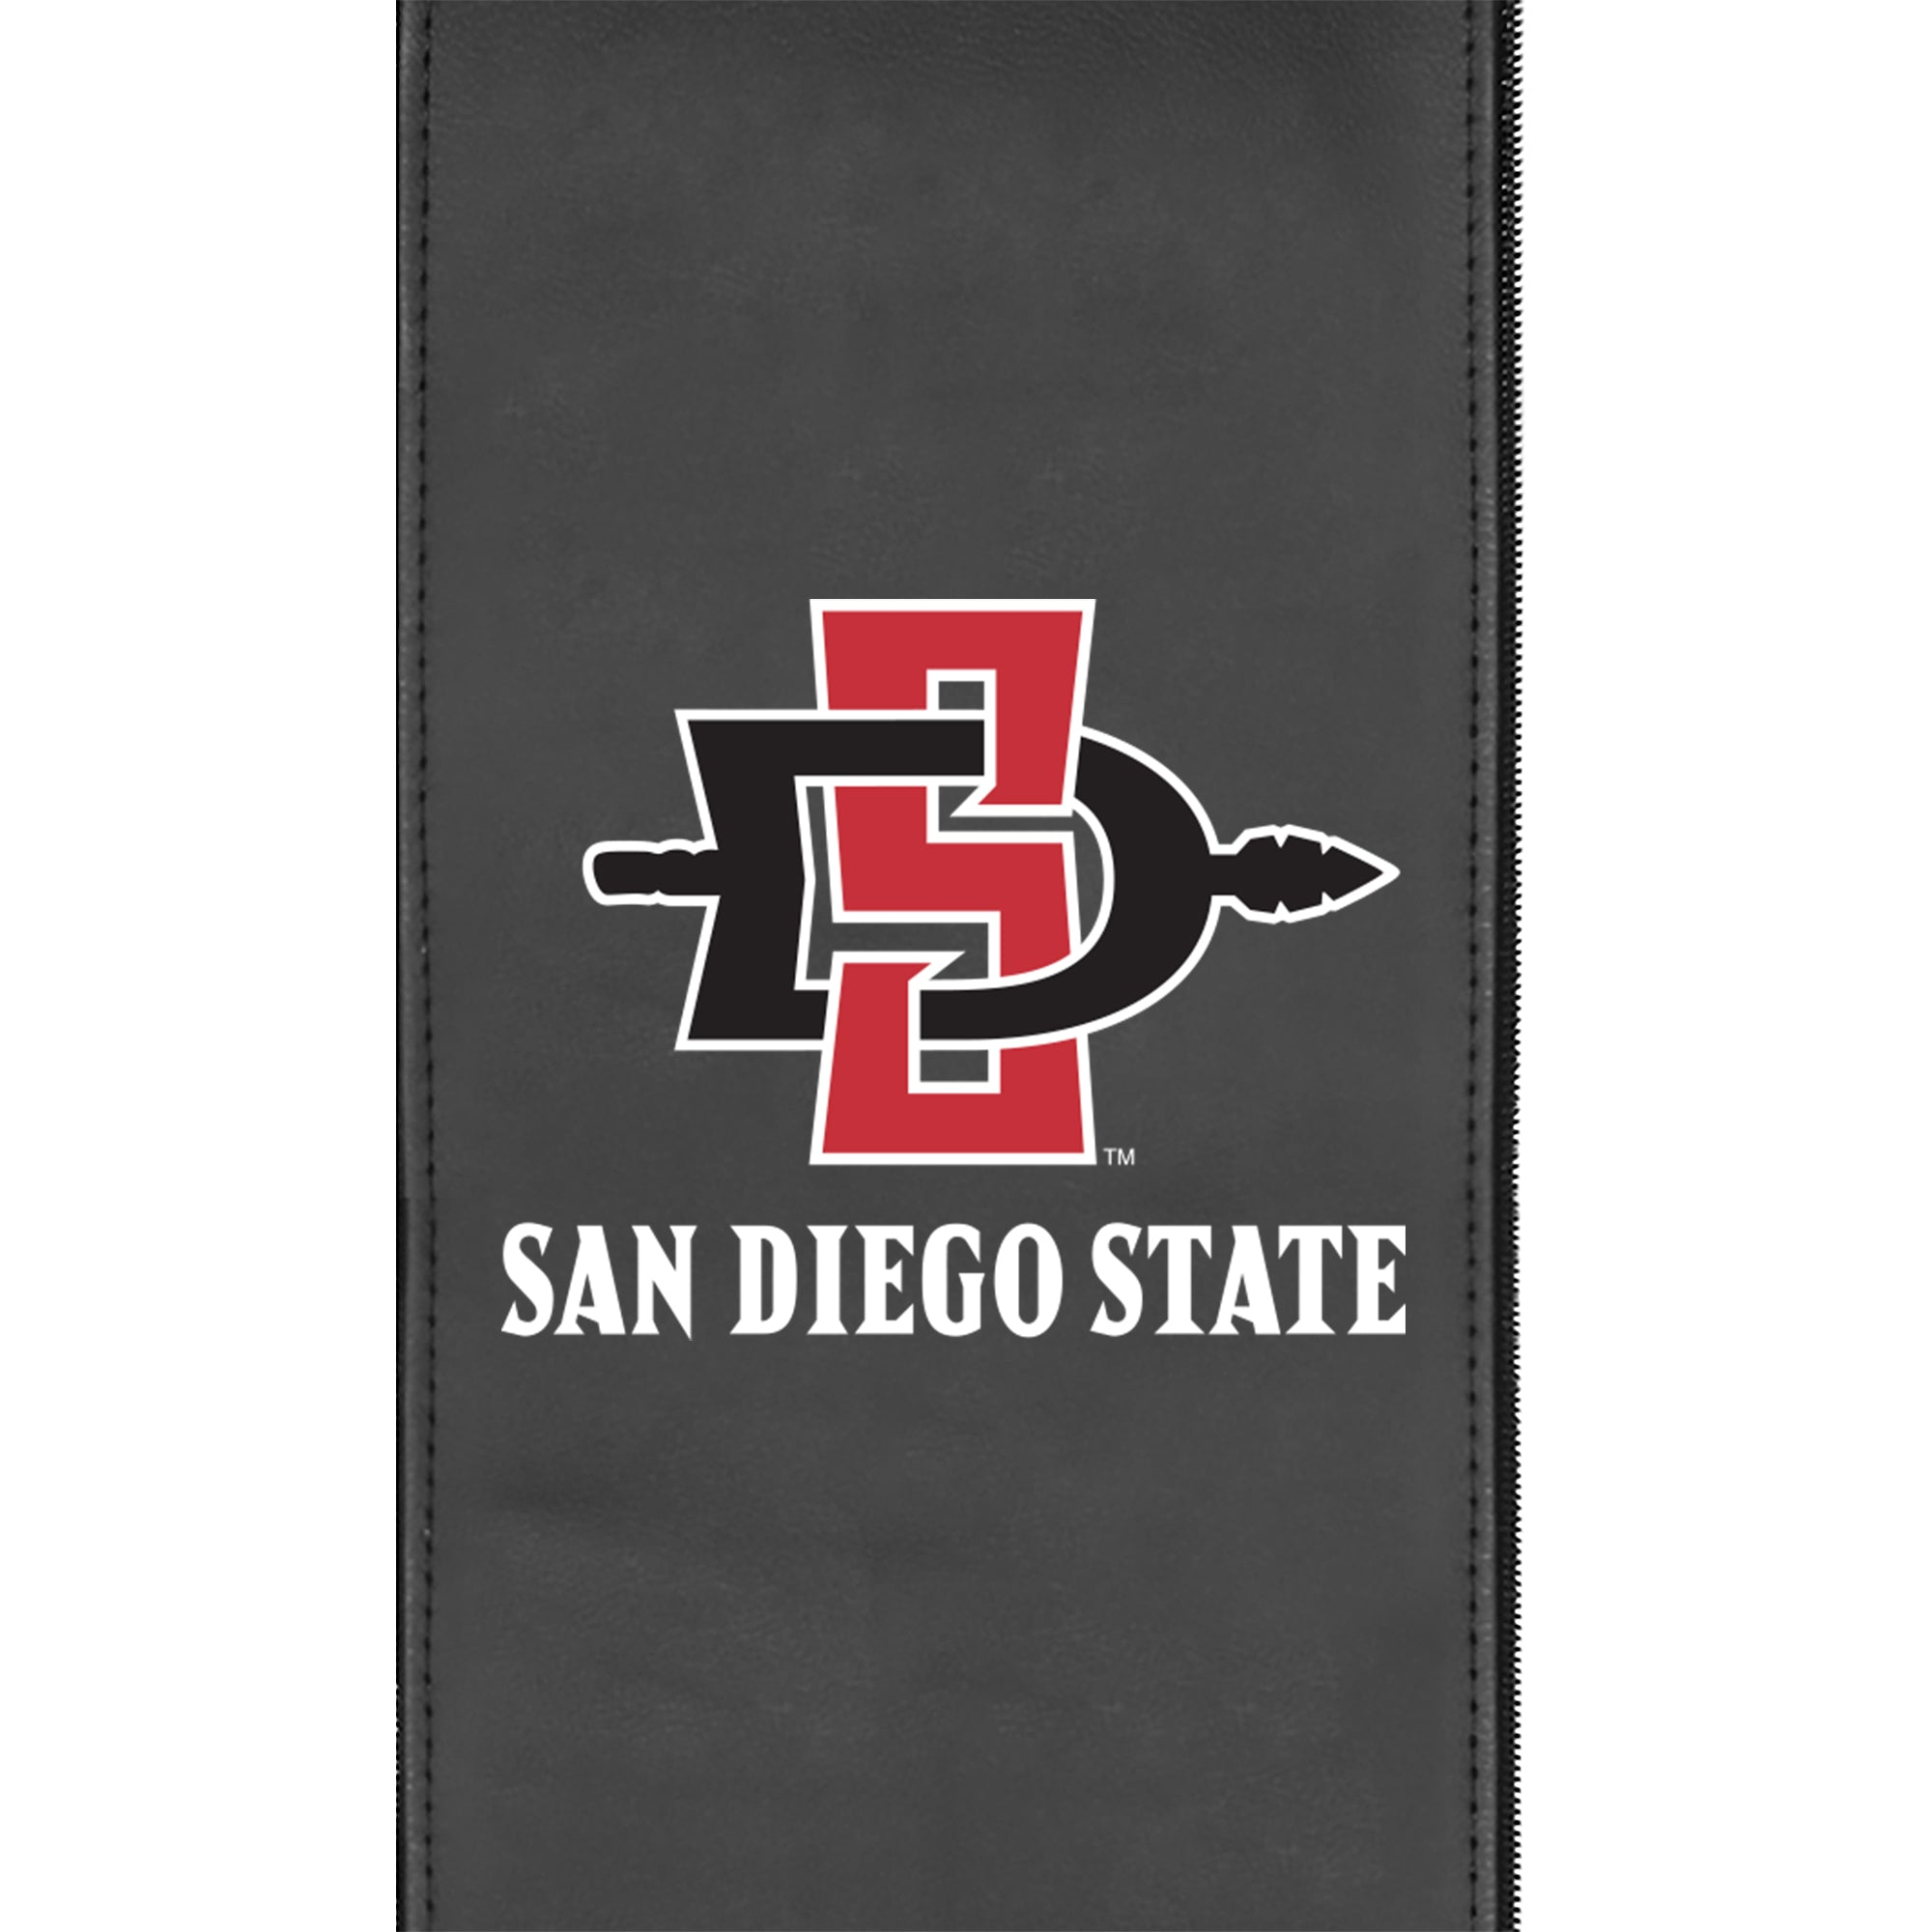 Silver Club Chair with San Diego State Primary